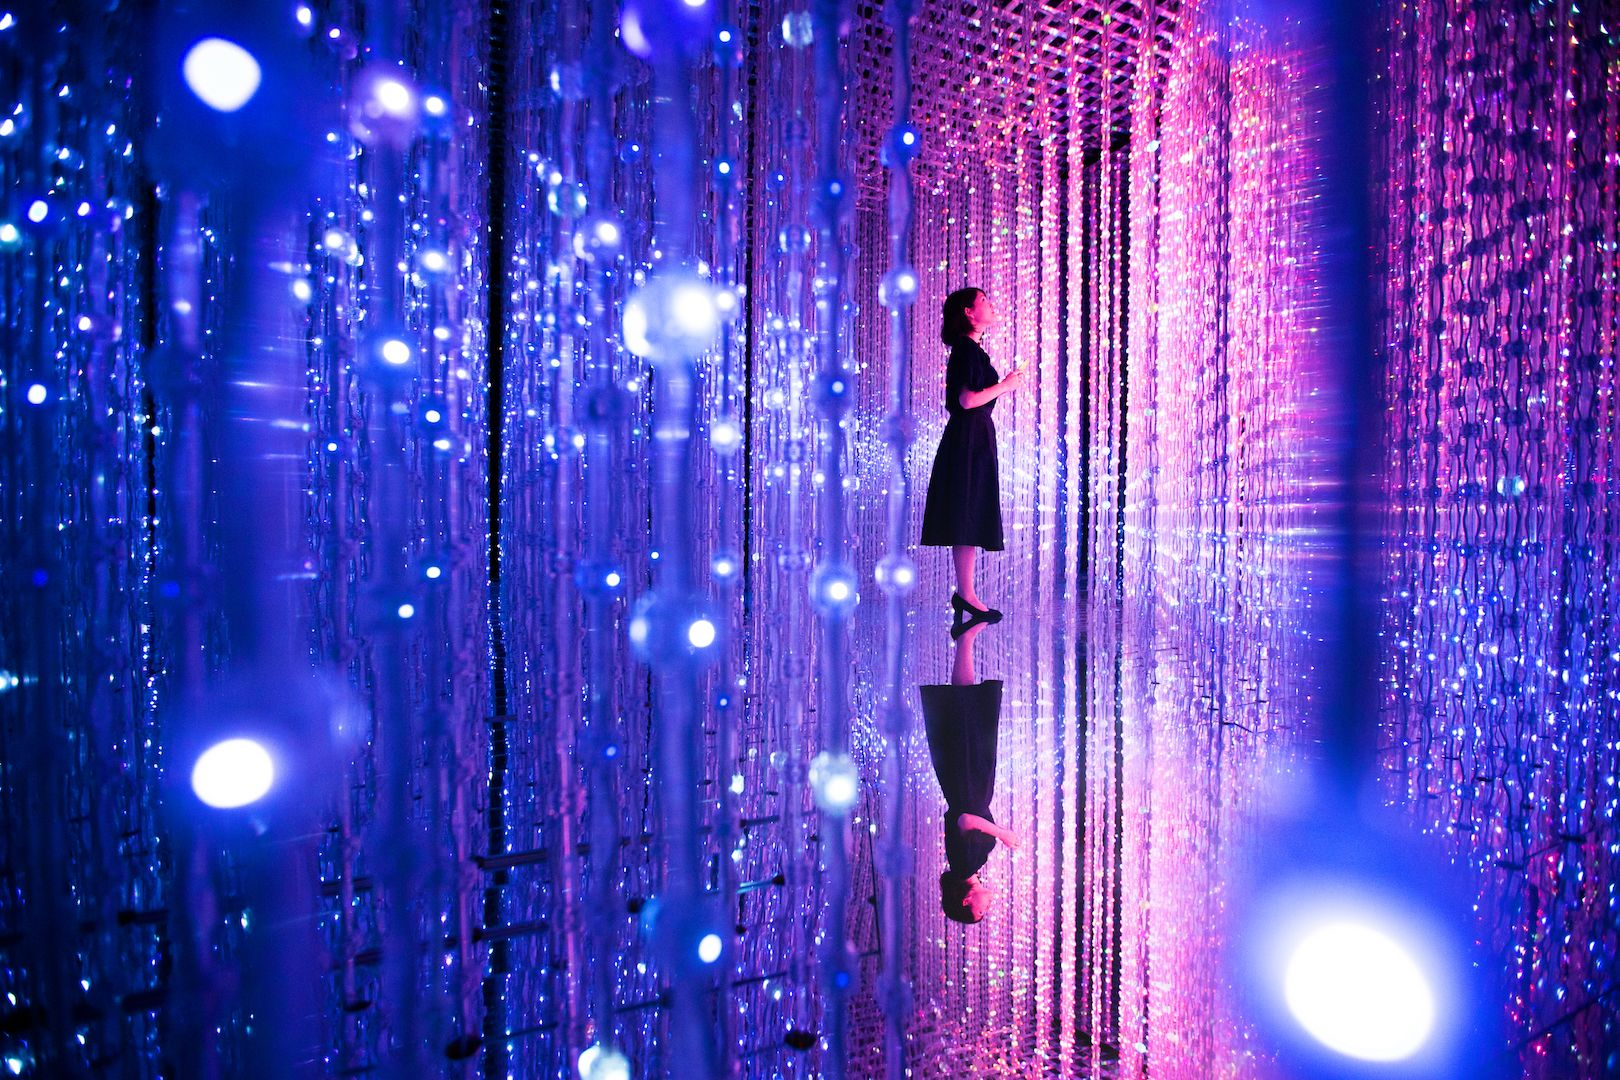 Instagram Worthy Location - Japan's TeamLab's Borderless